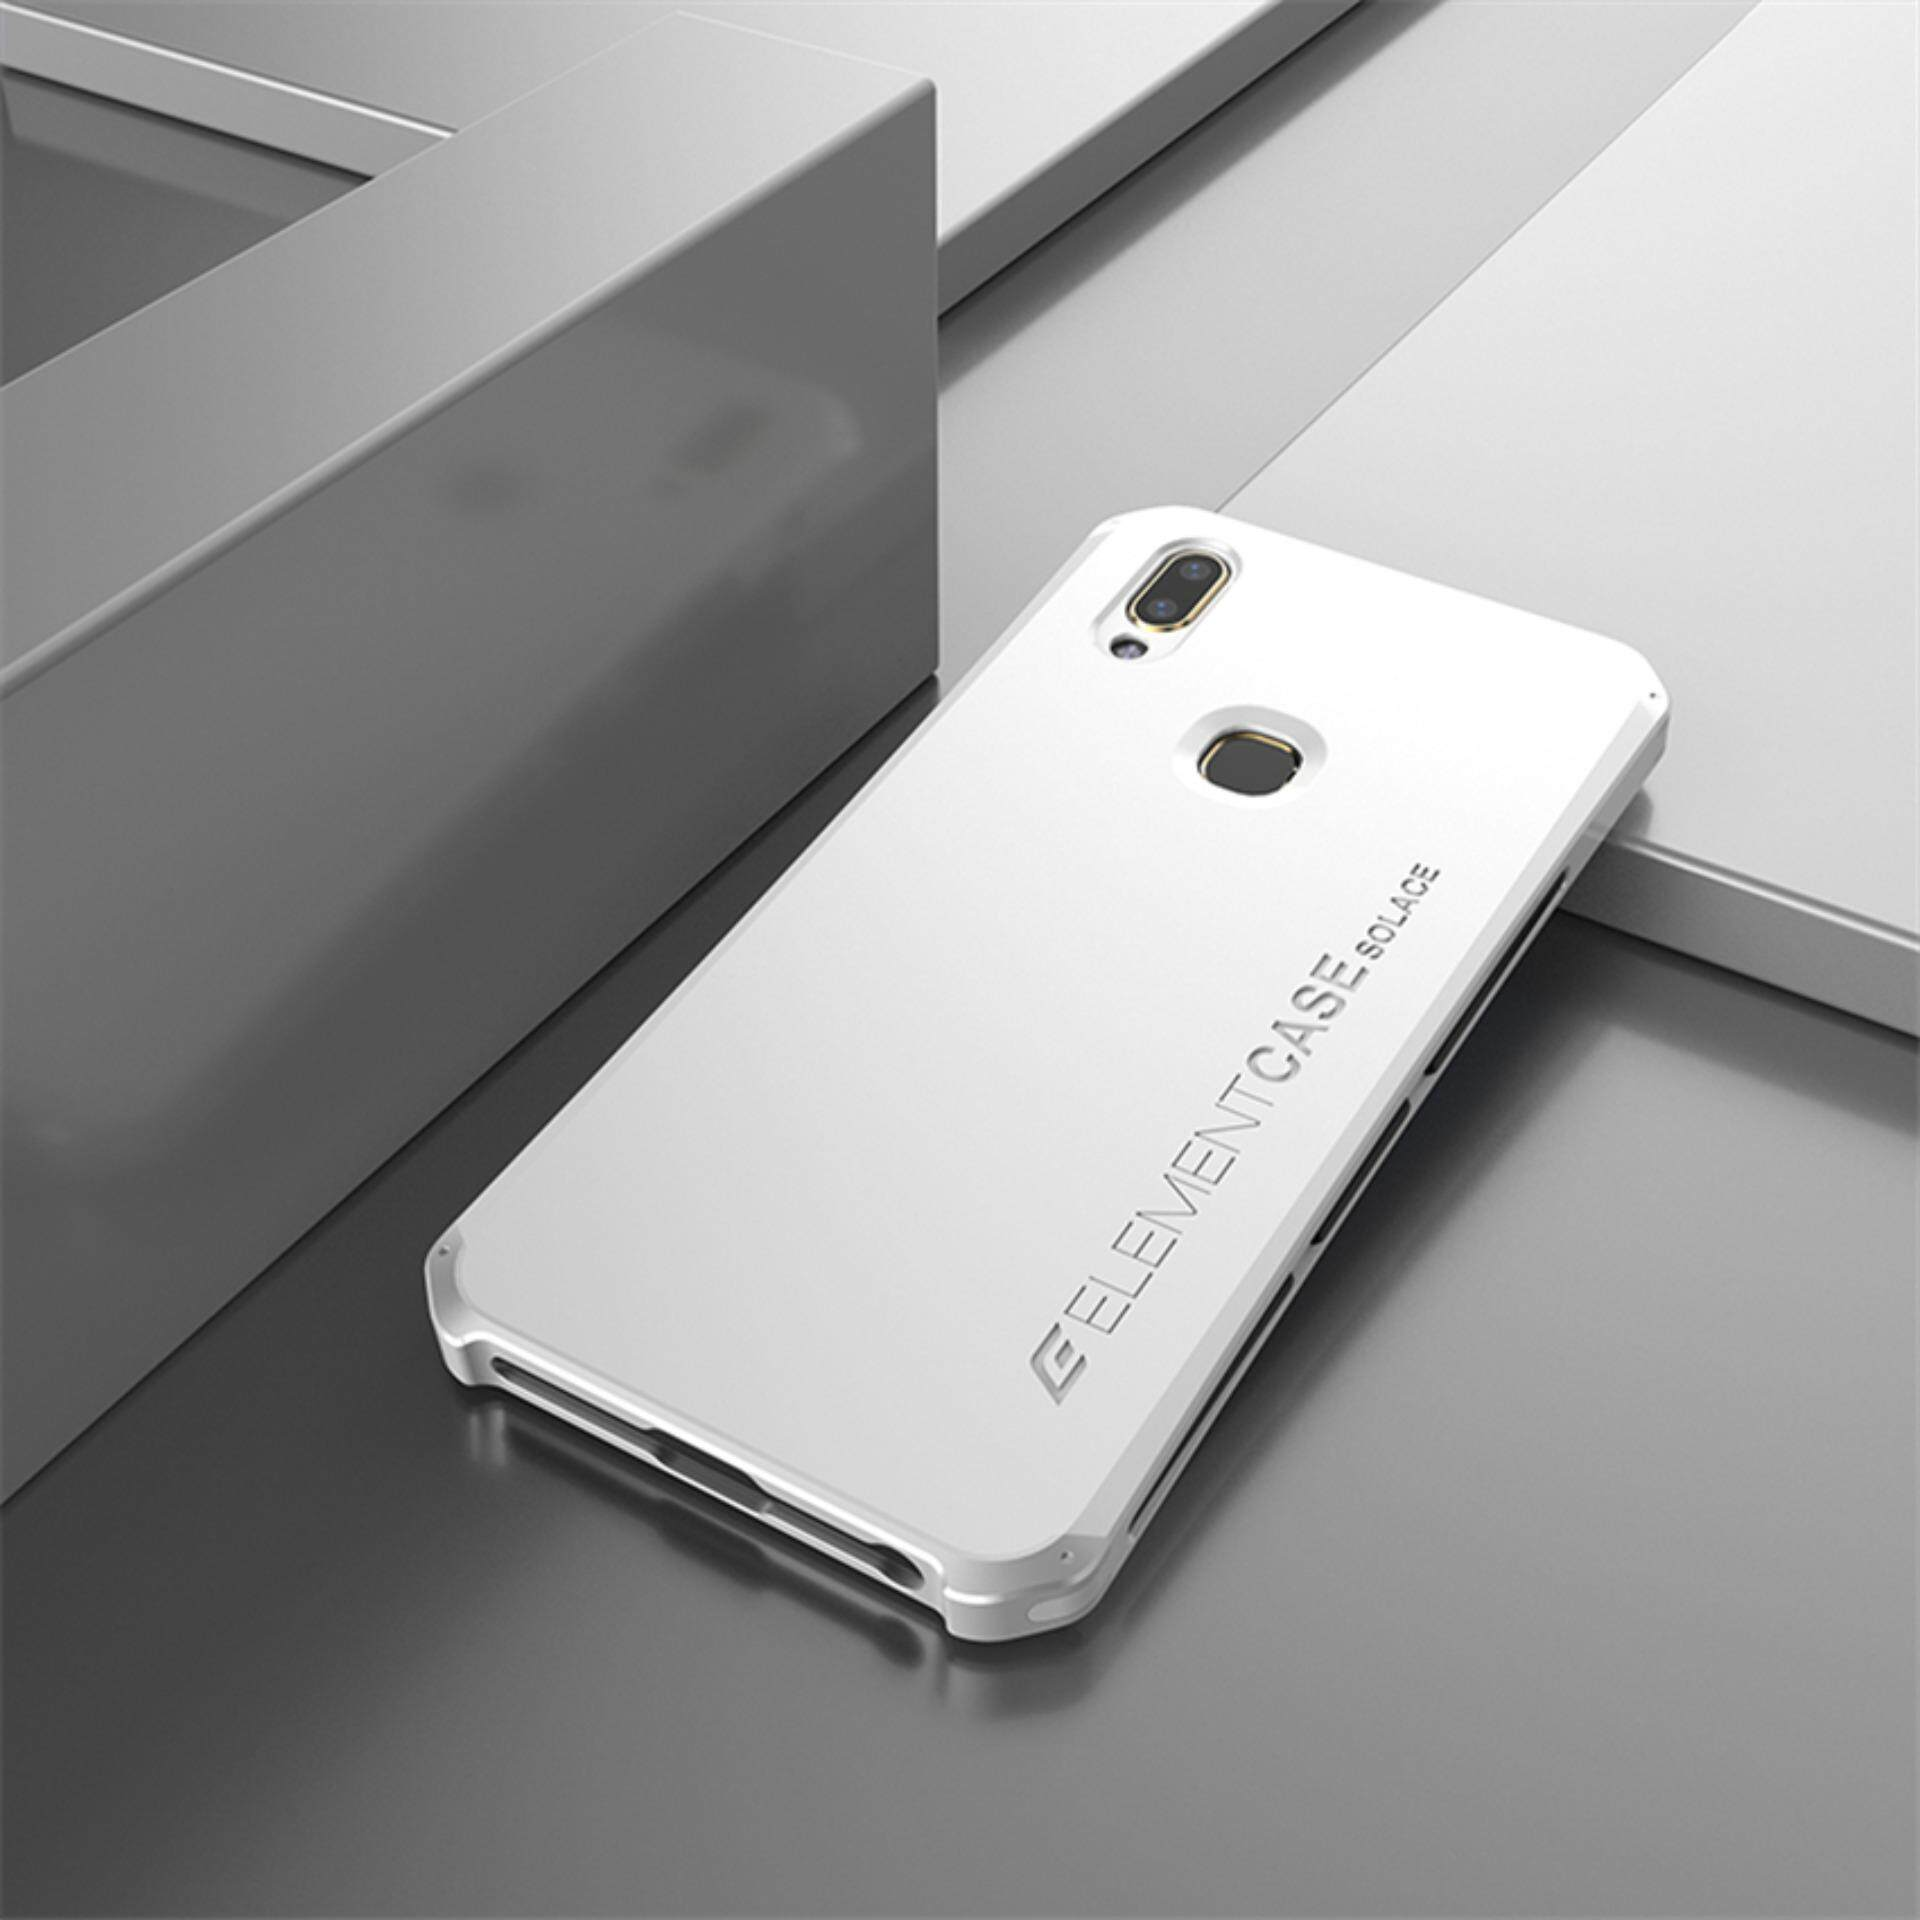 inch Case 3D Stereo Relief Painting Back 2 I Lazada TH Source Xiaomi . Source ·. Source · 3f50b88b24c23aabd0e1fbe7332f0dec.jpg